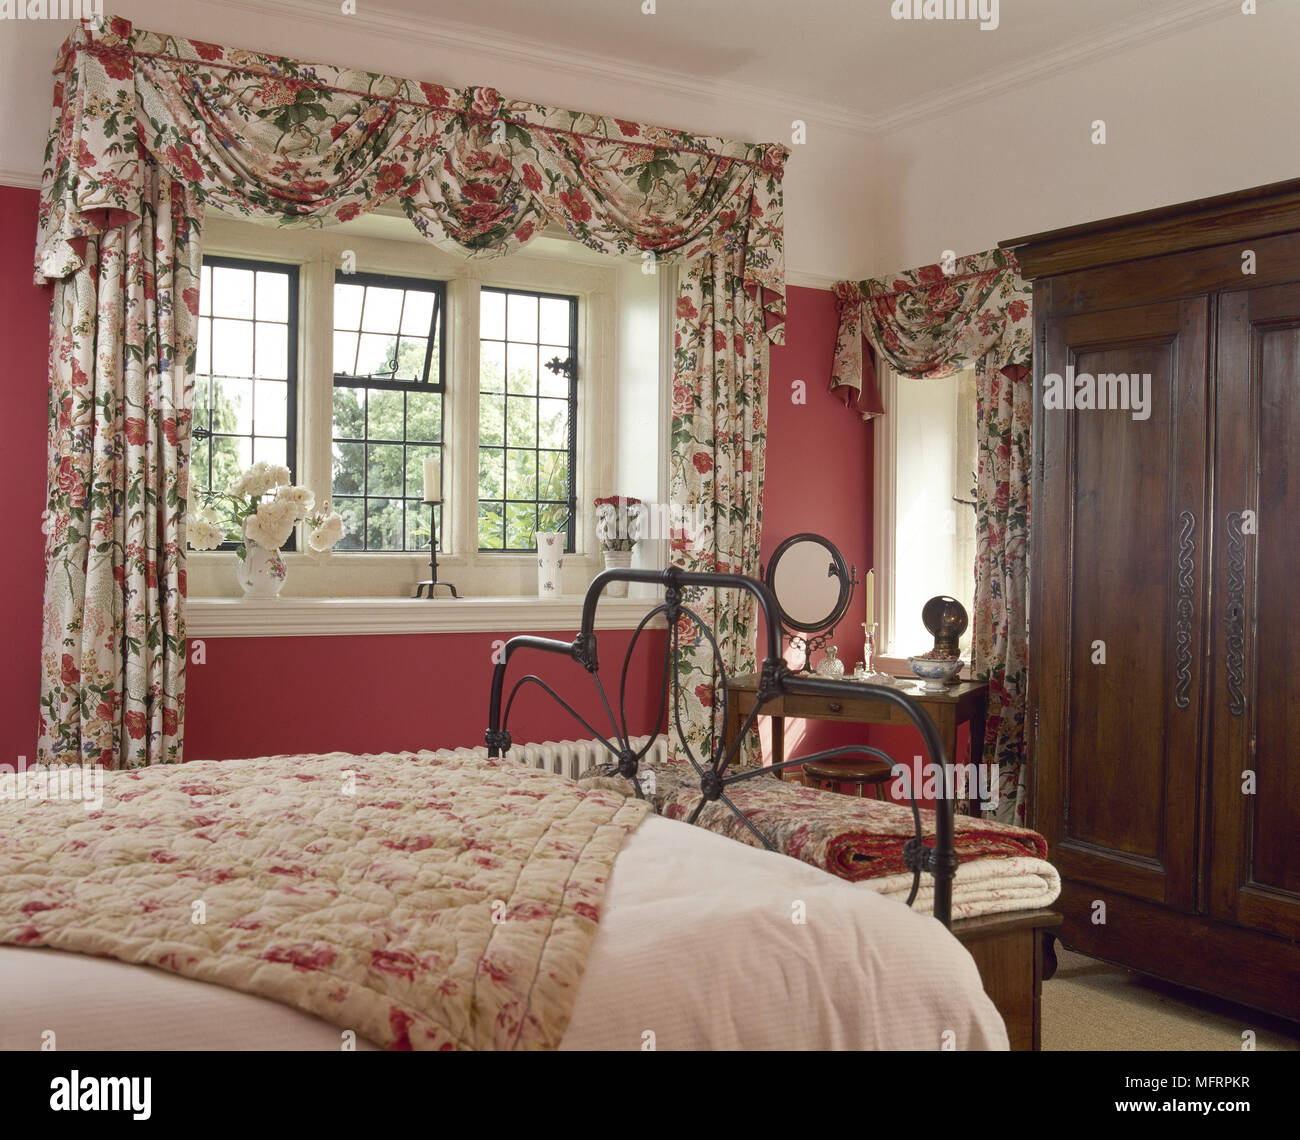 Country Bedroom With Floral Swag Curtains Wrought Iron Bed And A Dark Wood Wardrobe Stock Photo Alamy